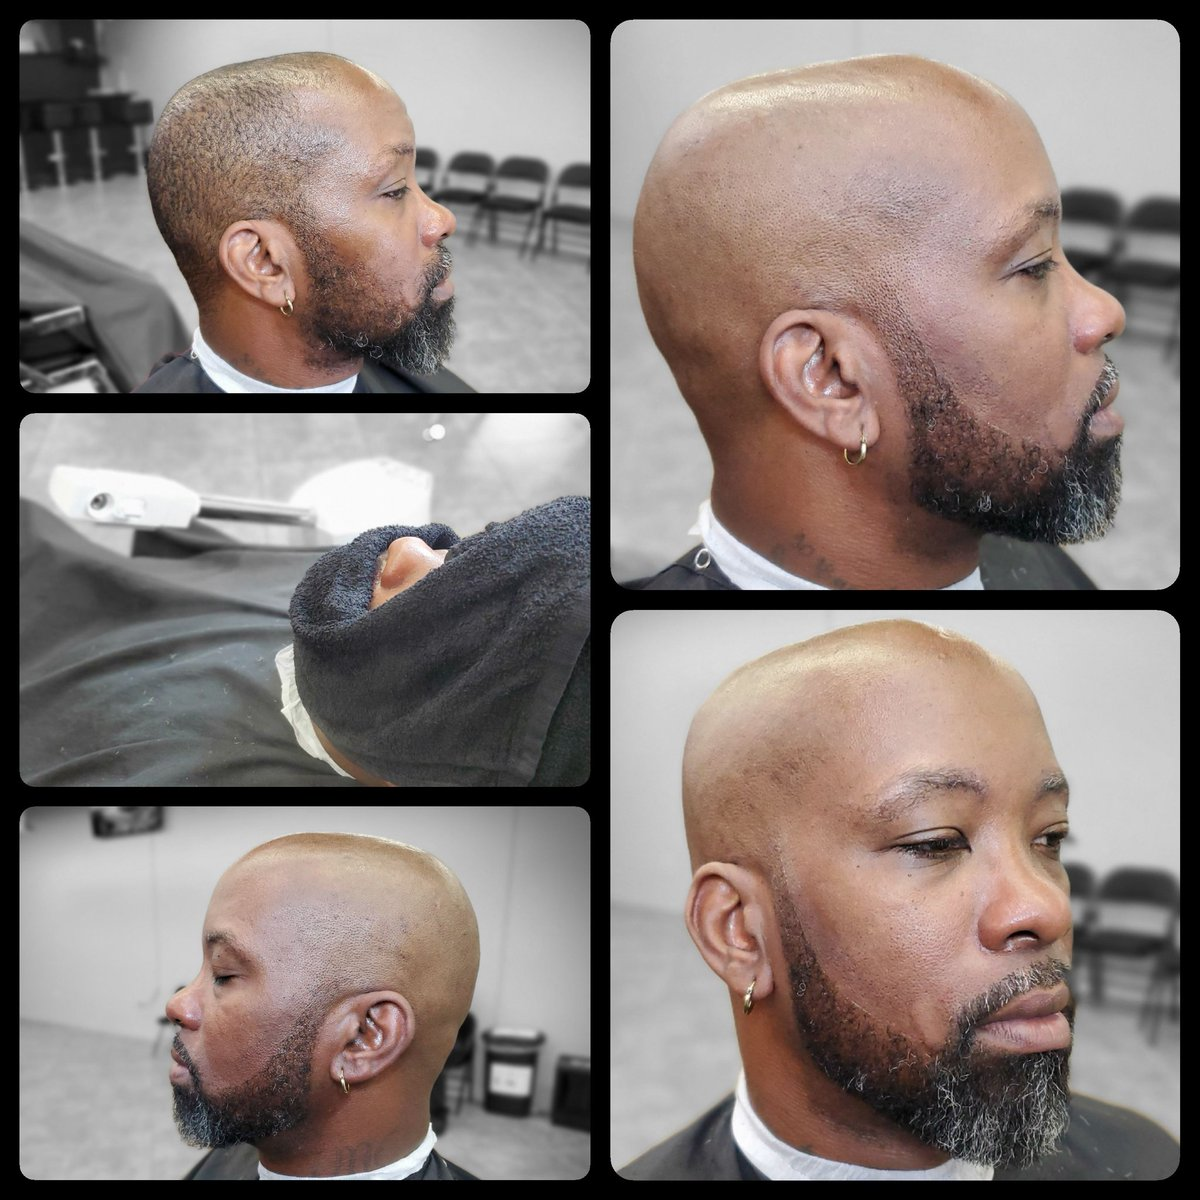 @Tsmackthebarber and @AndisCompany clippers present... The Vision-The Process-The Results...B4 and After.. #youvebeensmacked #azbarber #beard #bearded #beardgang @AndisCoUK @Best_Barbers @BarberNews @Barbershopconne @BarbersincTV @BarberSalonTalk @barbersonlymag @Barbers4Barberspic.twitter.com/K11a9Z1E6i